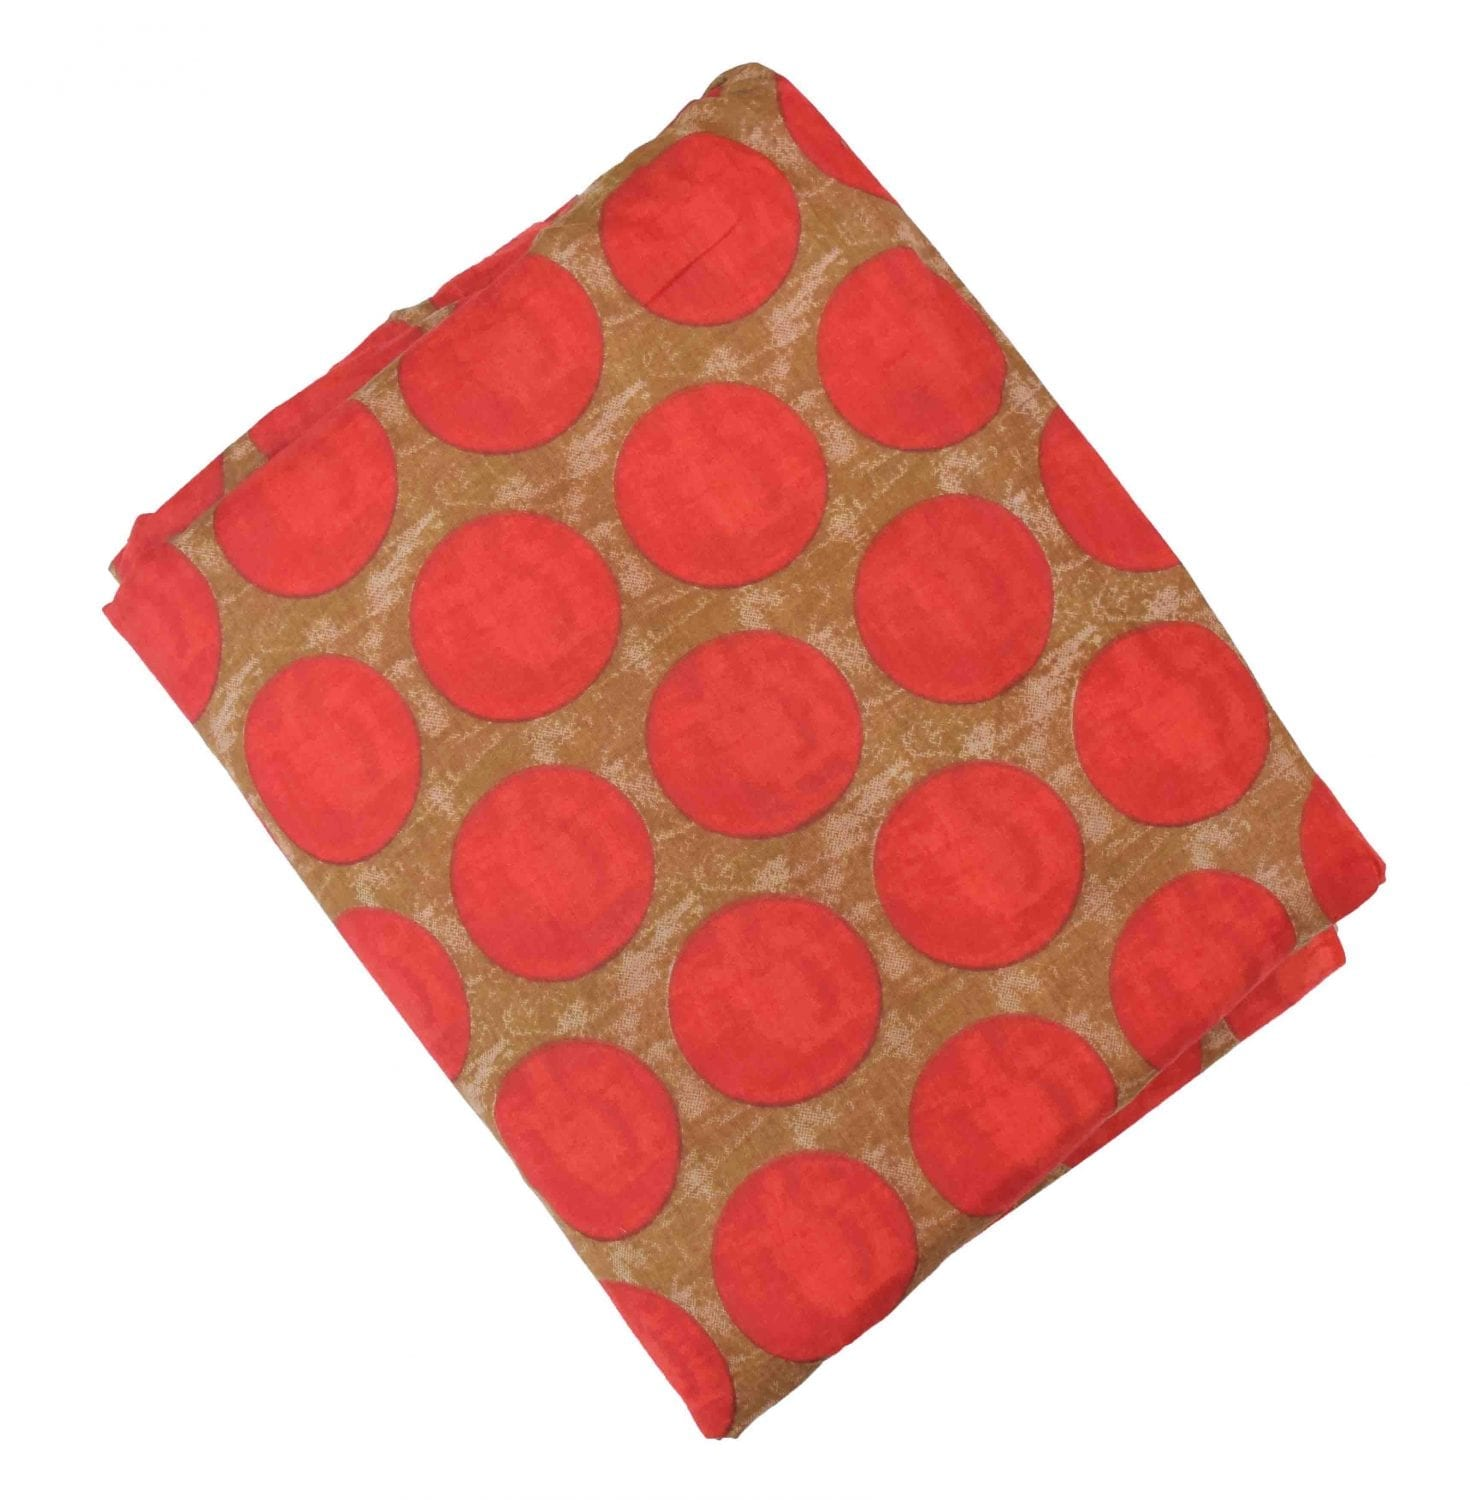 Red Dots allover print Pure cotton fabric PC439 1